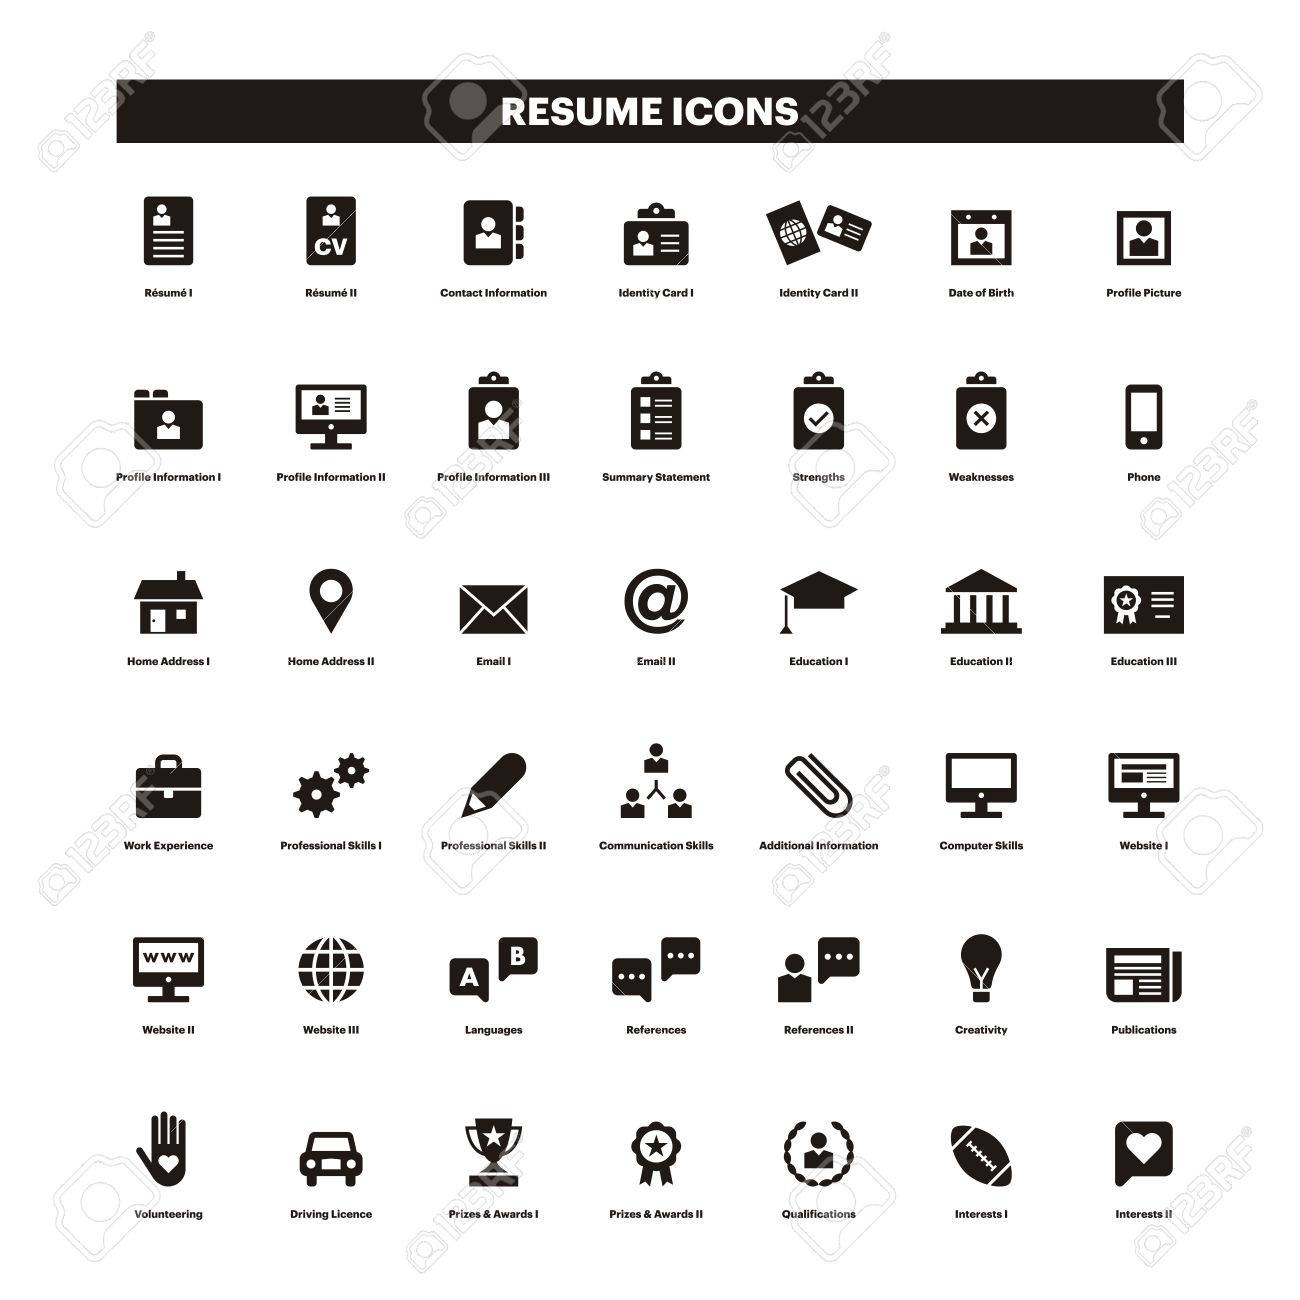 Cv And Resume Black Solid Icons Royalty Free Cliparts Vectors And Stock Illustration Image 78948509